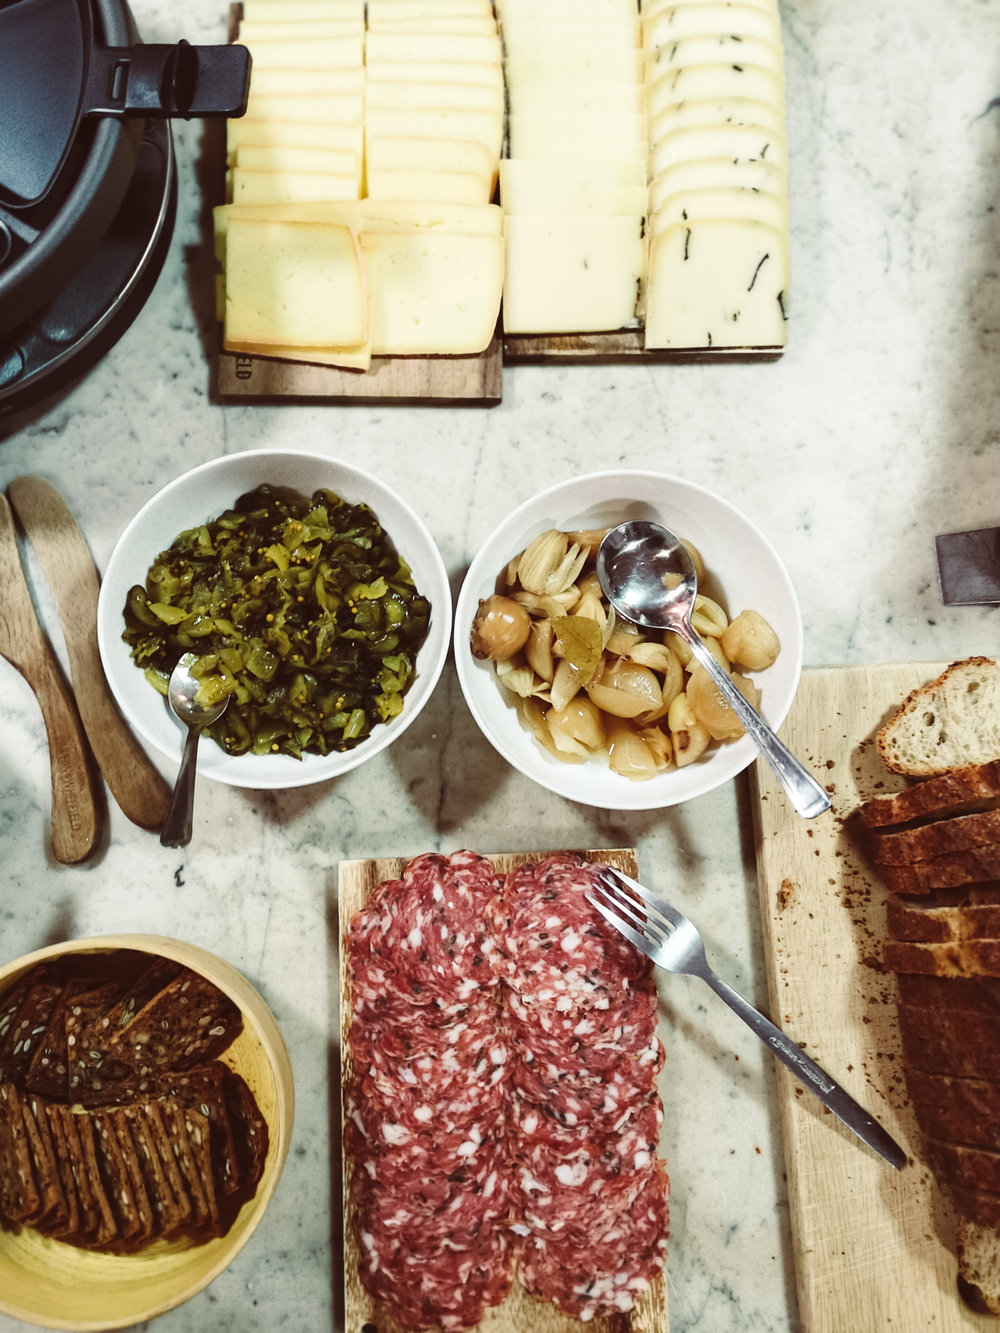 Lucie Loves Paxton and Whitfield raclette party ideas